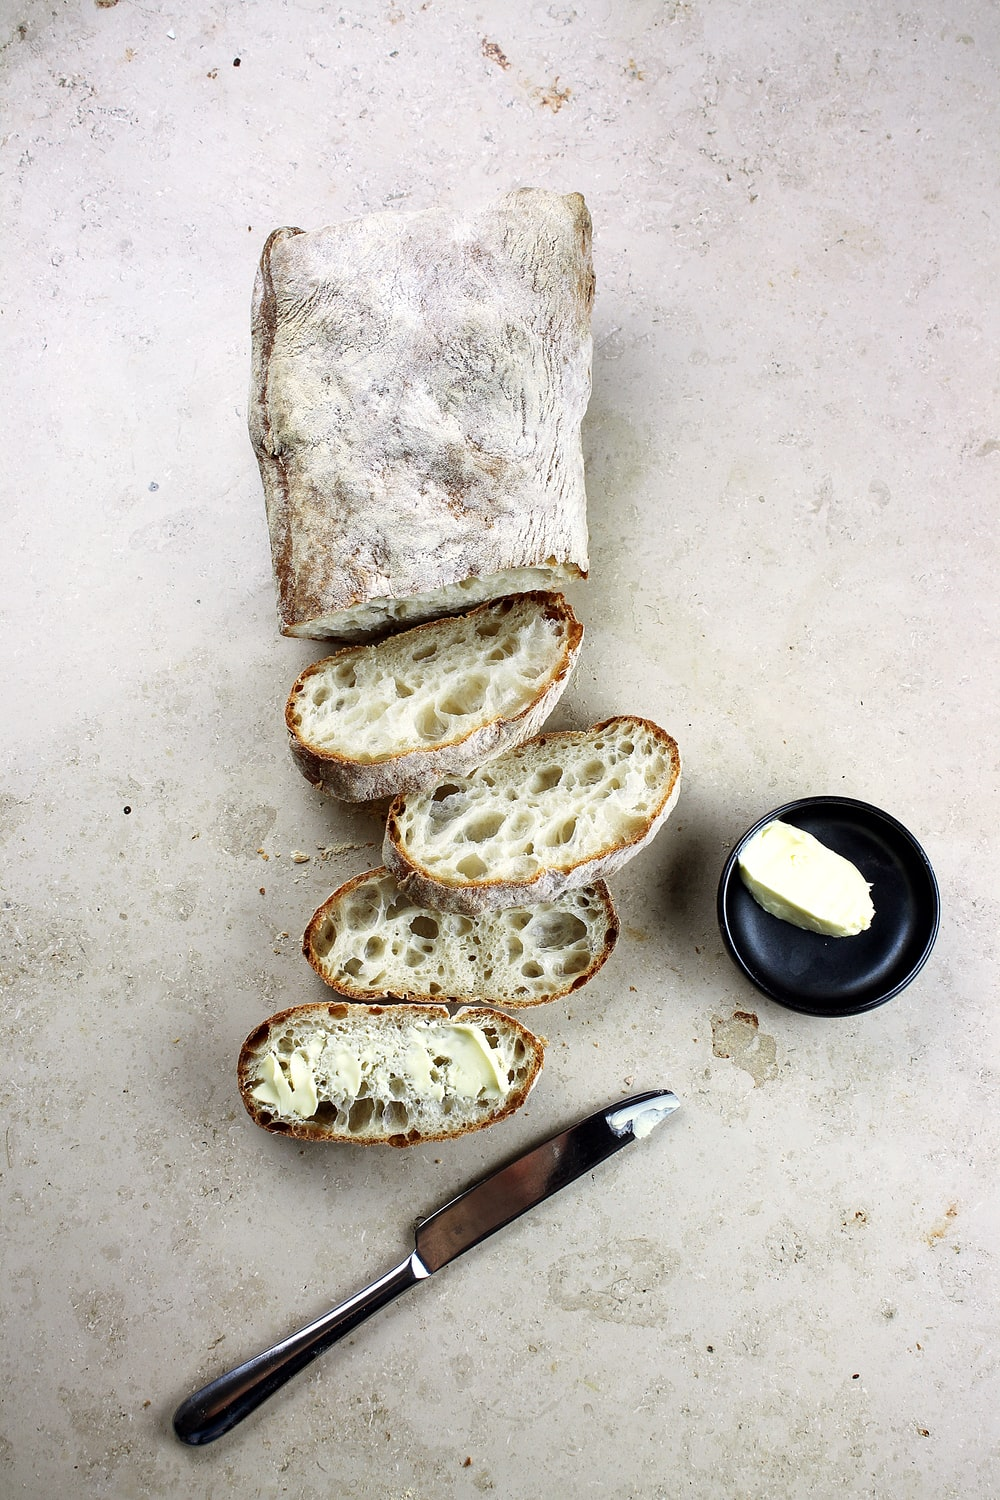 bread slices beside knife